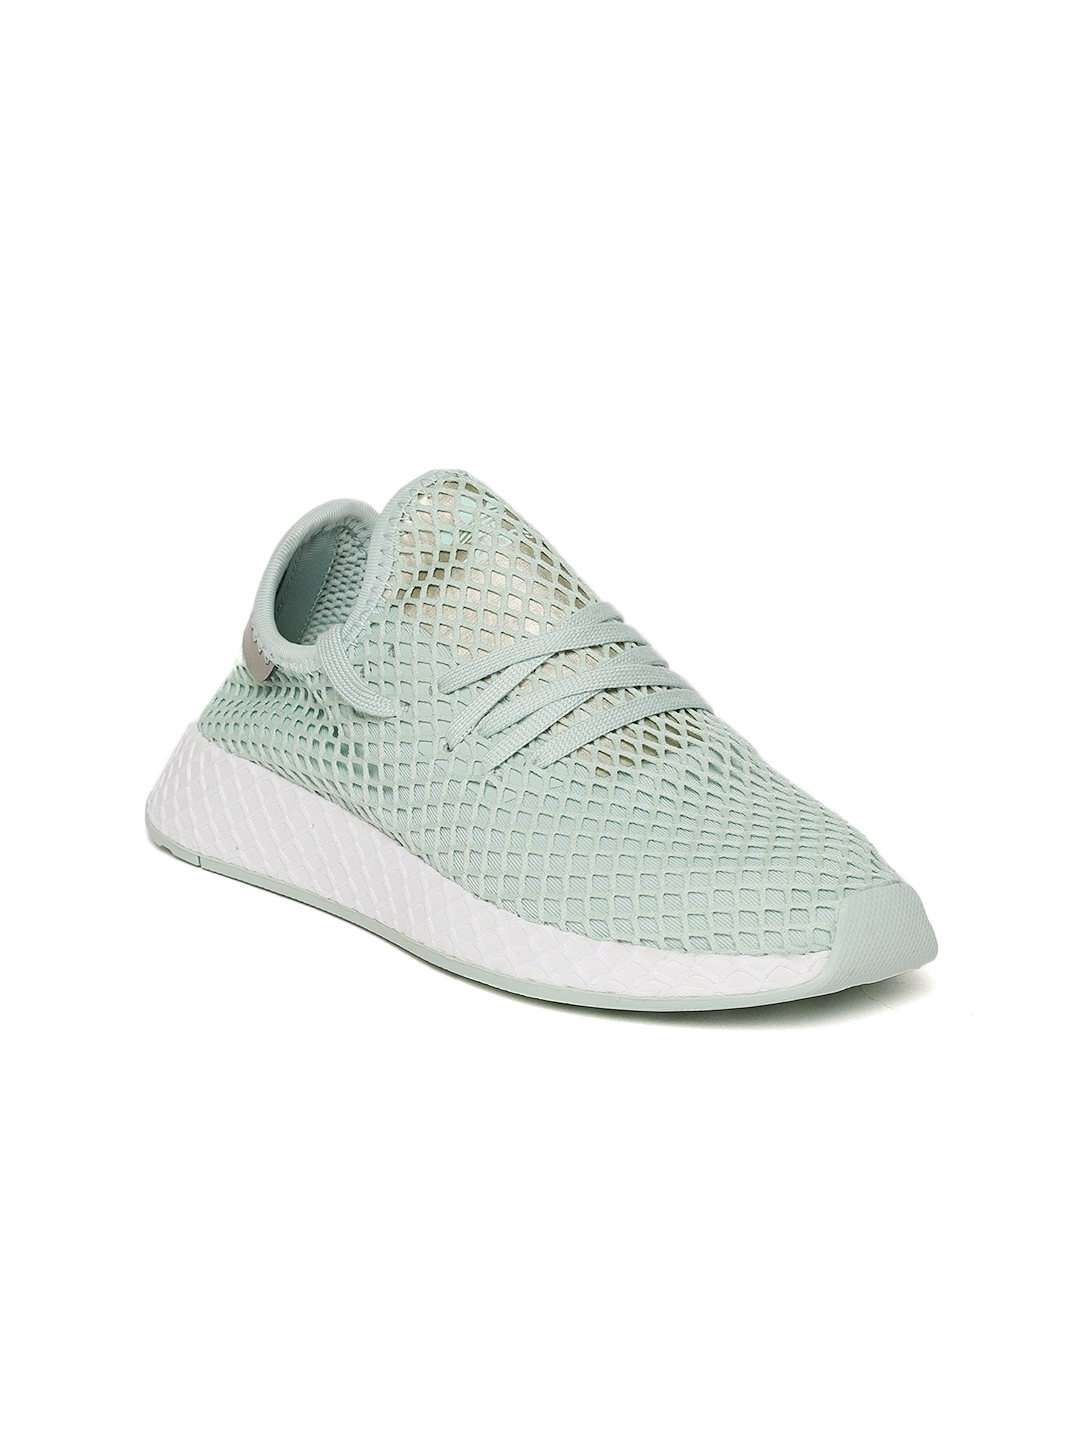 e058d8d89e887 Buy Adidas Originals Women Mint Green DEERUPT Patterned Sneakers ...